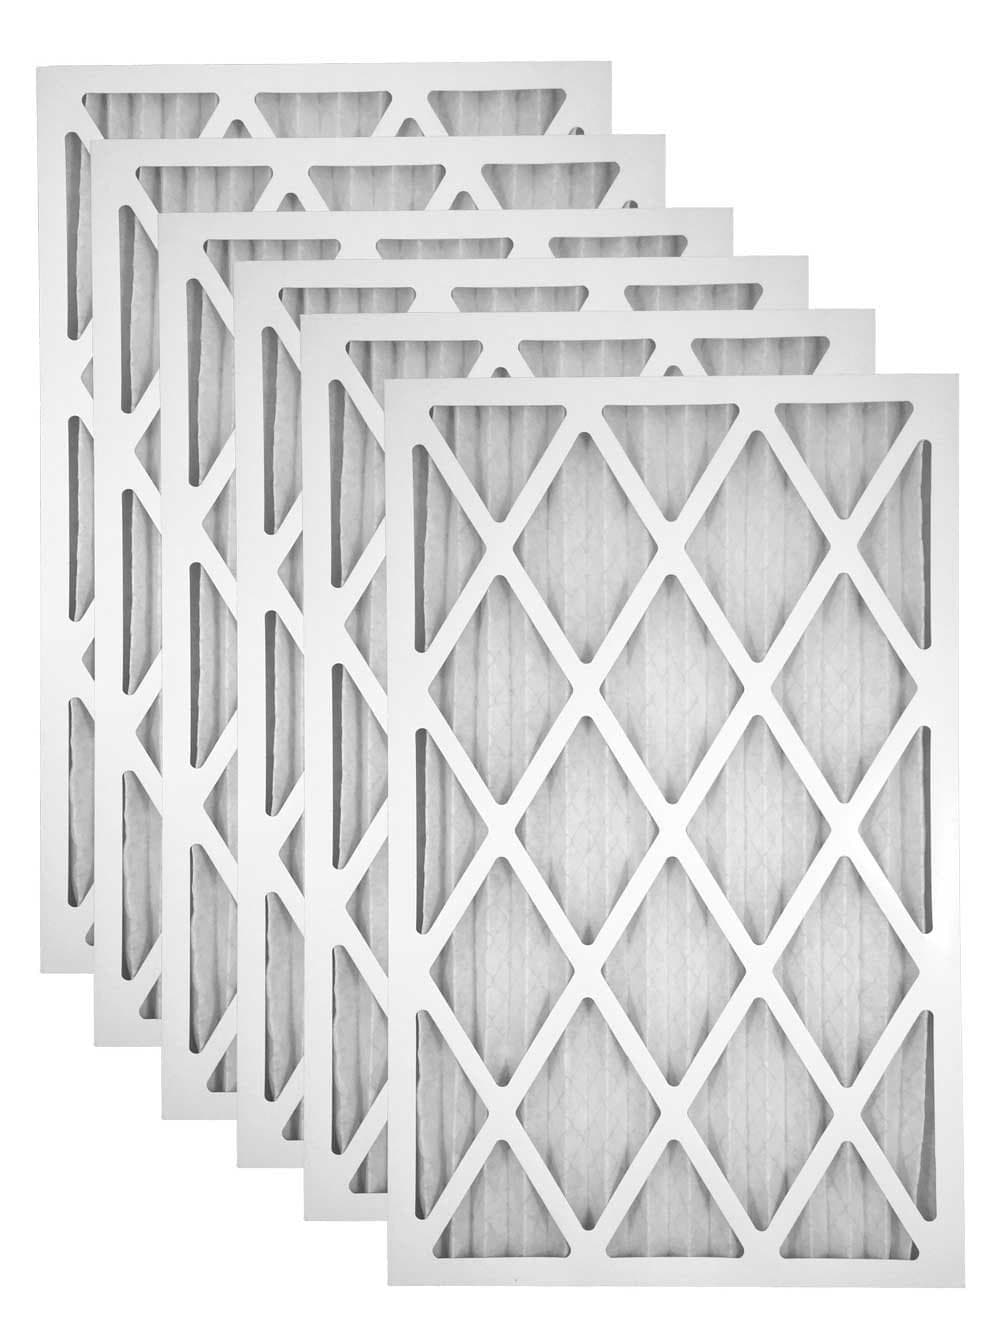 16x20x1 Merv 13 Pleated AC Furnace Filter - Case of 6